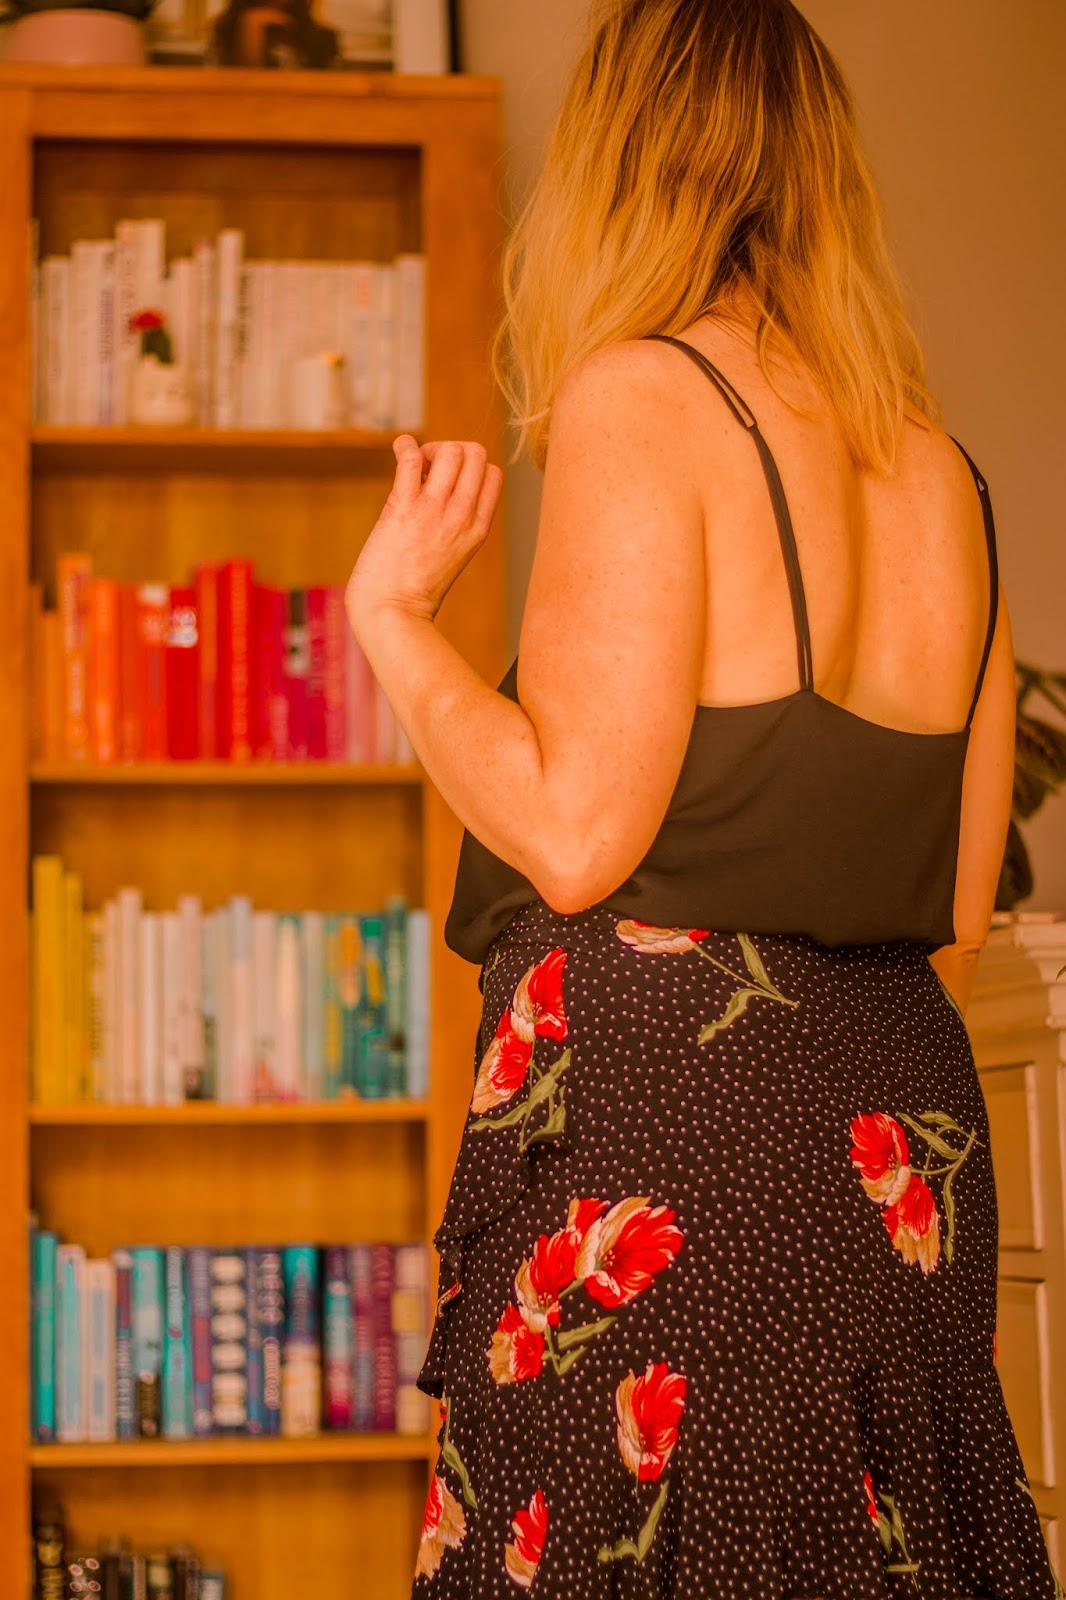 blonde girl with red lip chloeharriets stood in front of book shelf full of colourful books - recent reads and book reviews - reading